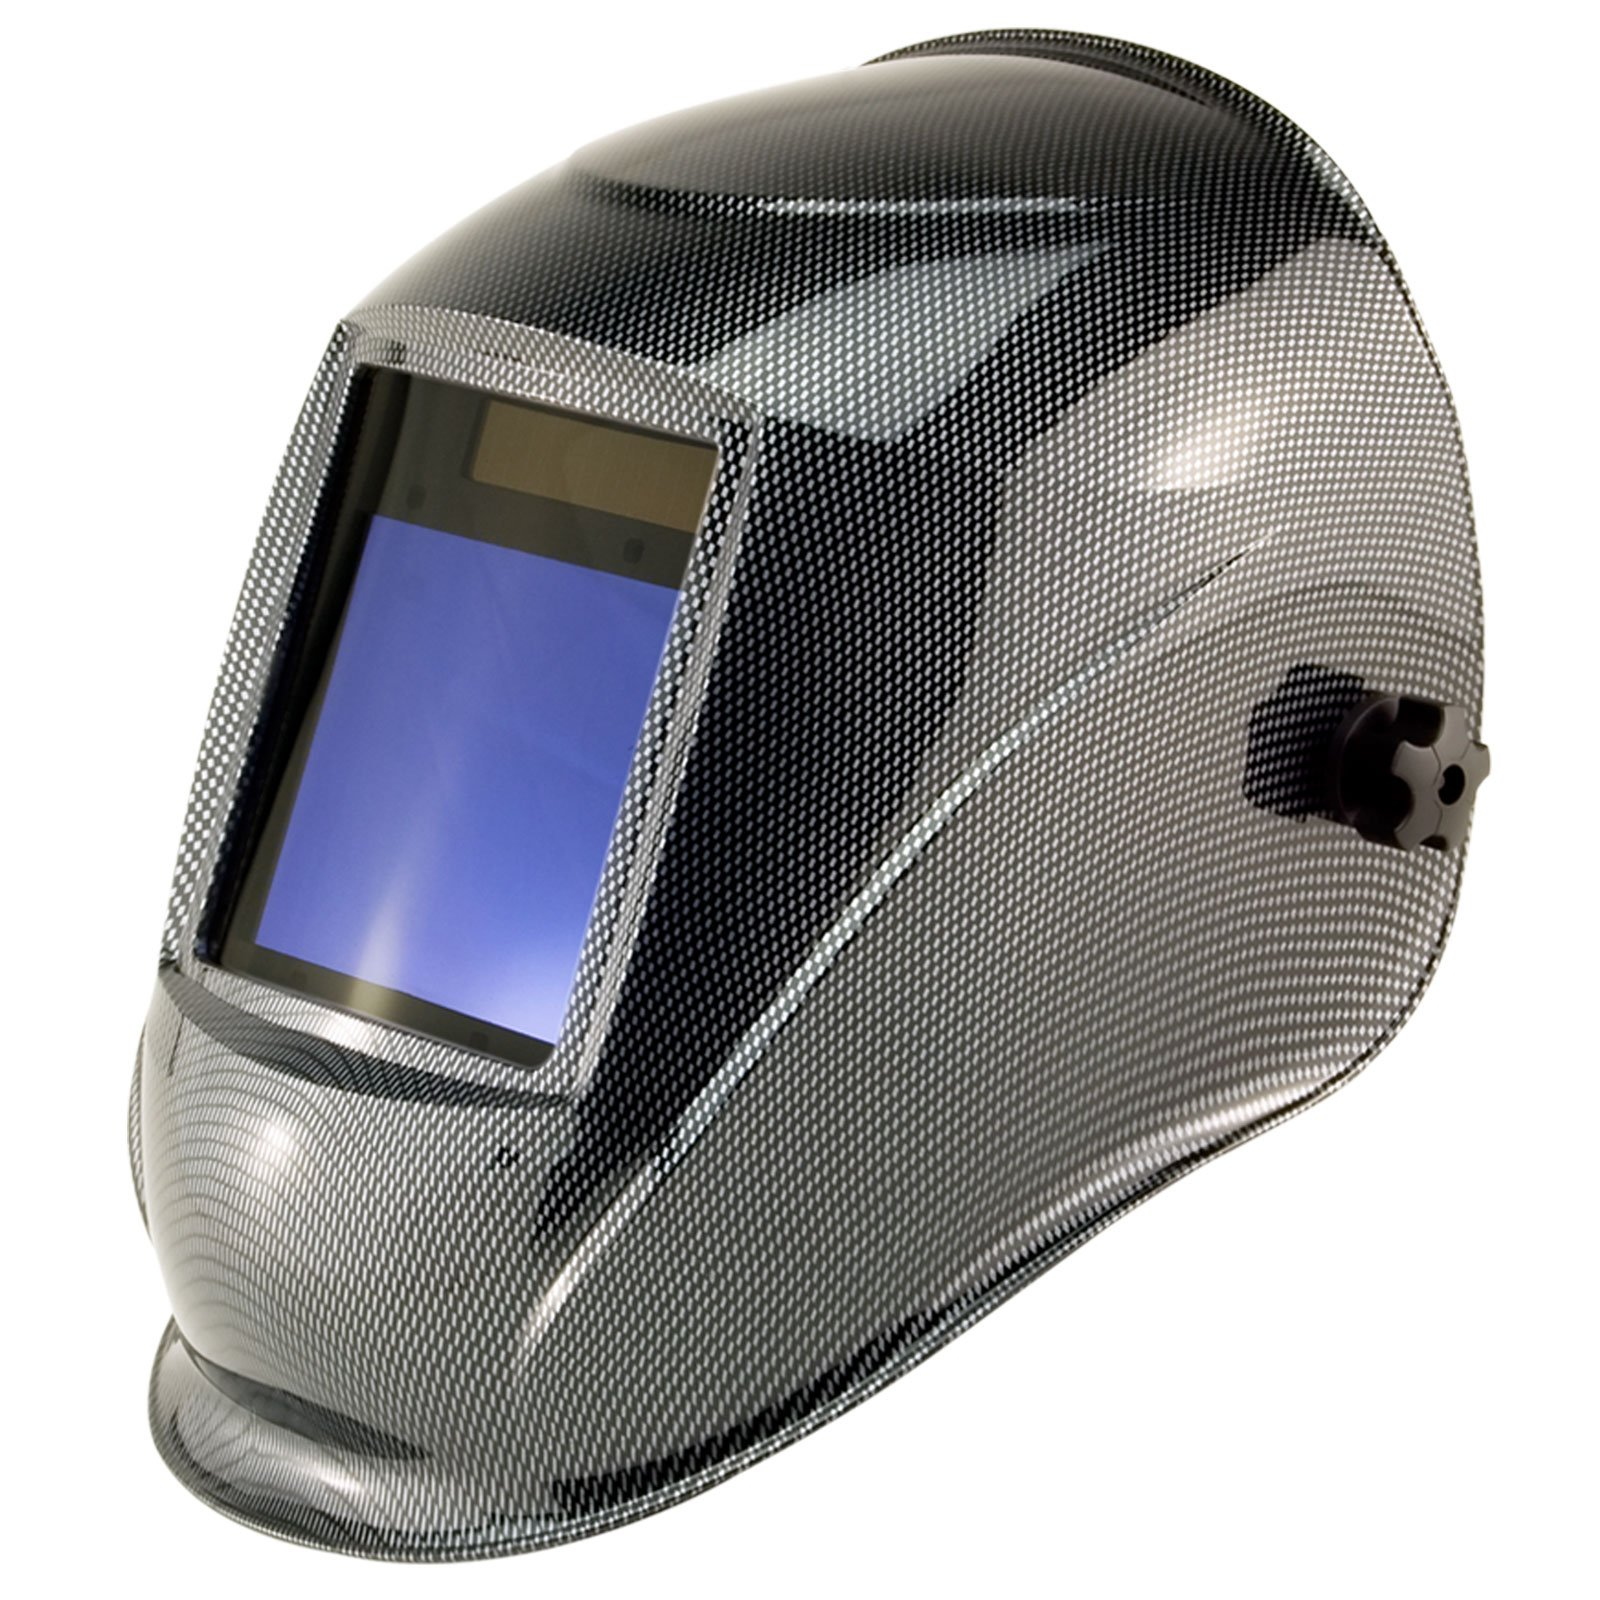 True-Fusion Big-1 Carbon IQ2000 Solar Powered Auto Darkening Welding Helmet Hood Grind mask with Massive View Area (98mm x 87mm - 3.85x3.45 inches) FREE Storage Bag, Spare Lenses and Spare Sweatband included